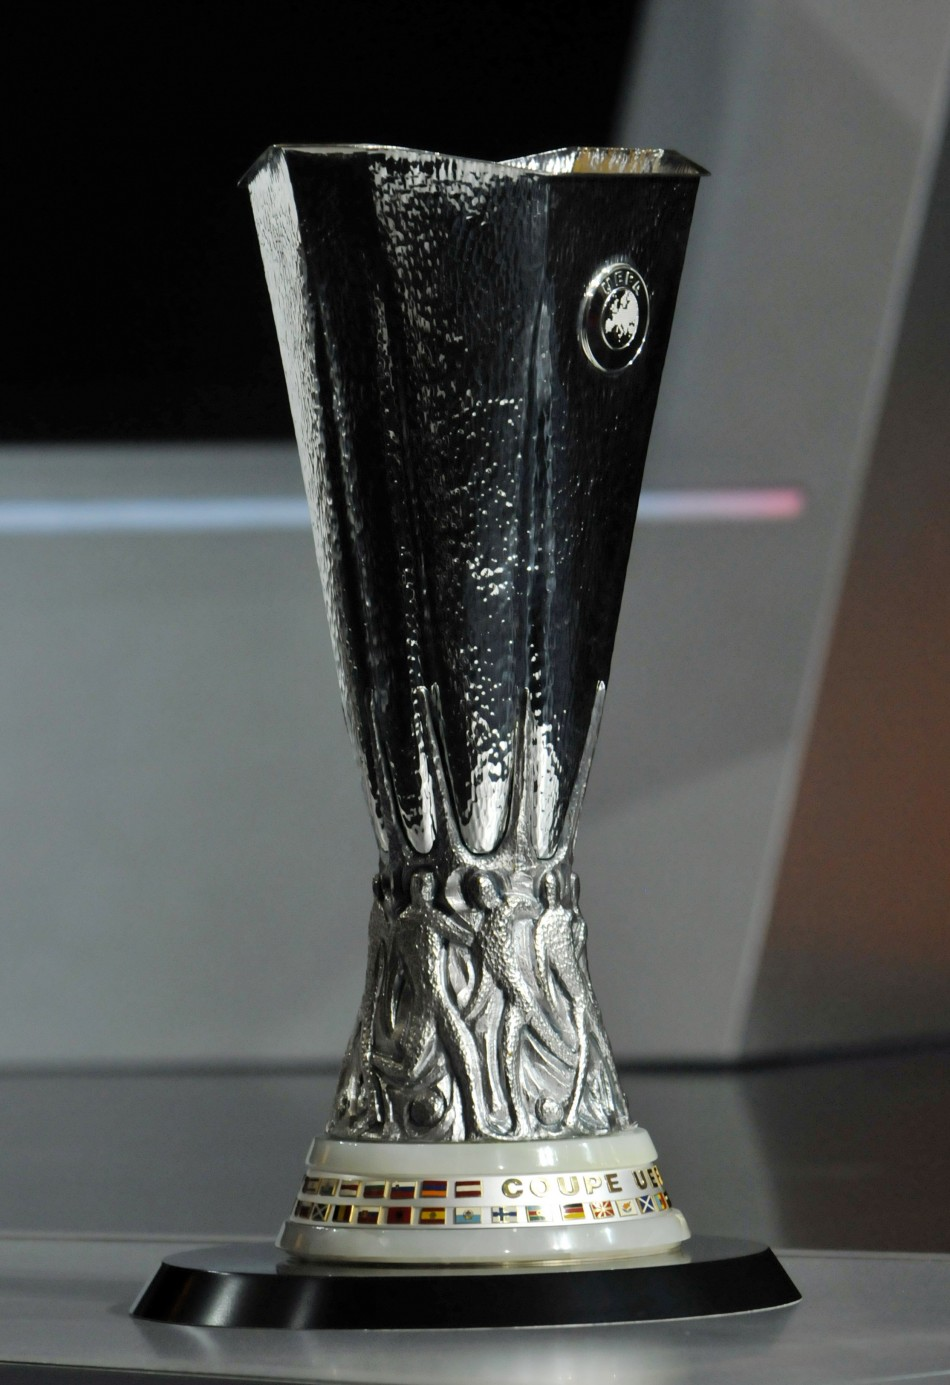 2011/12 UEFA Europa League Trophy